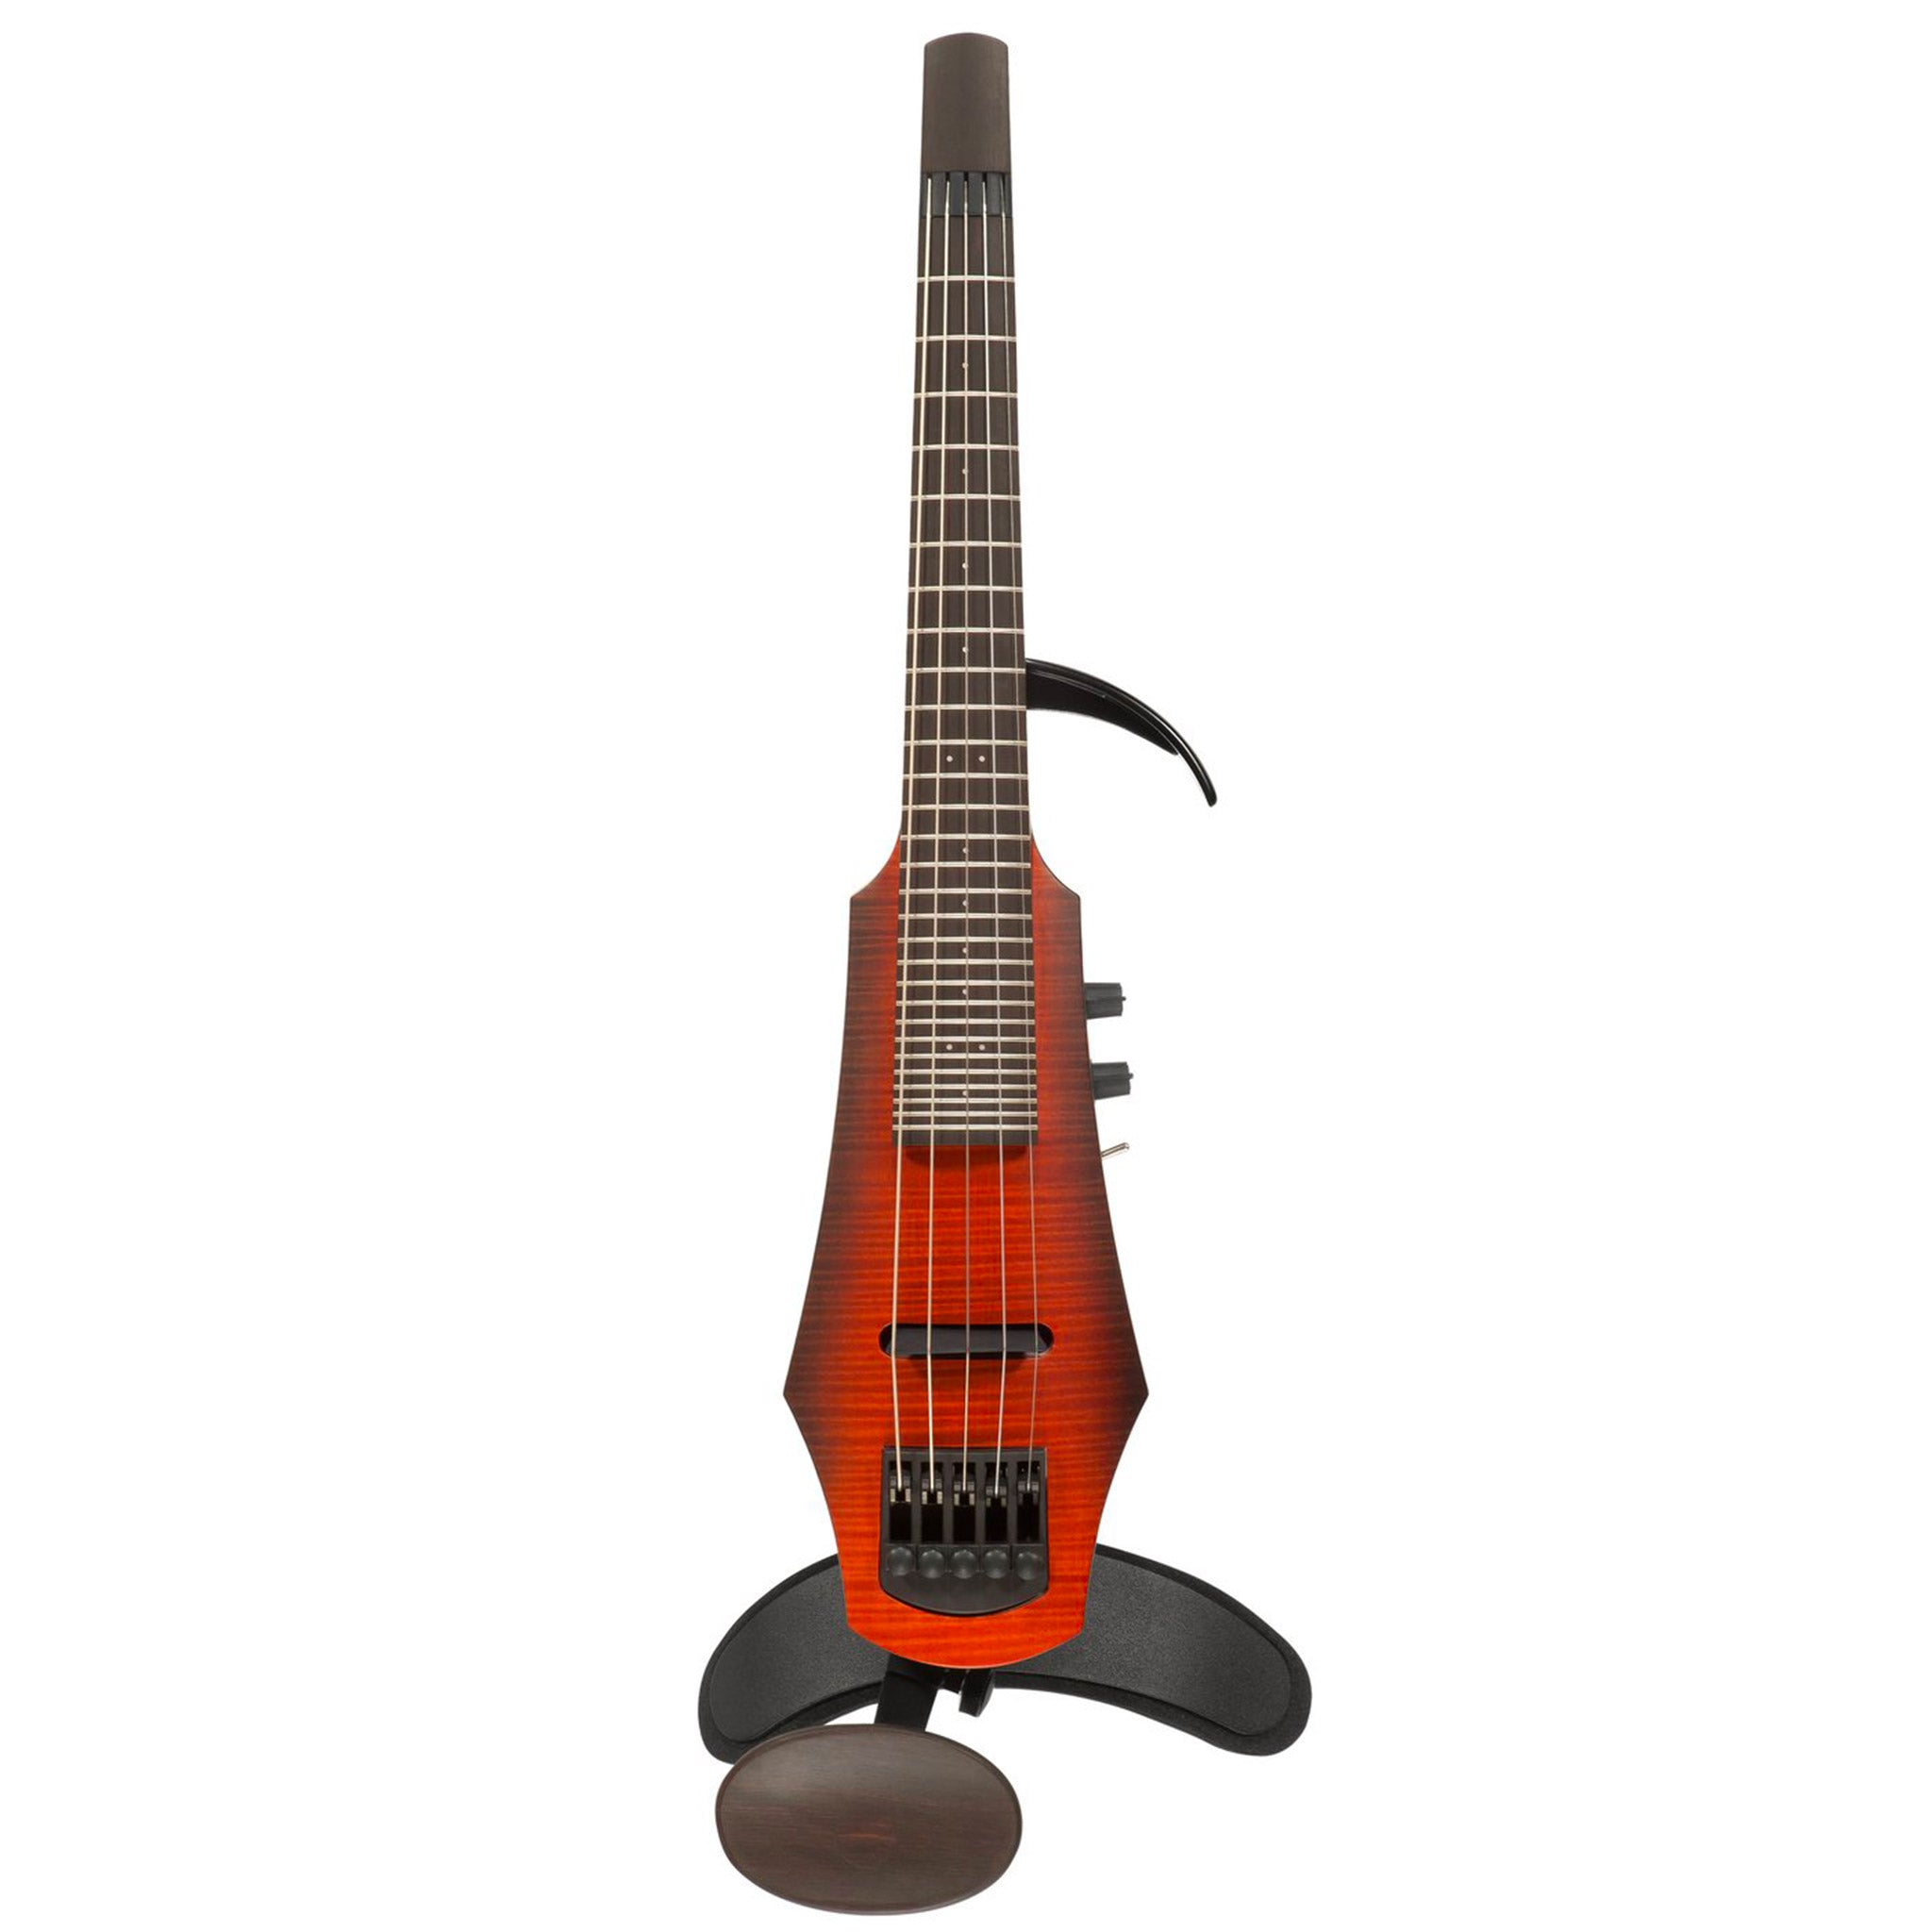 NS Design NXTa 5-string Fretted Electric Violin